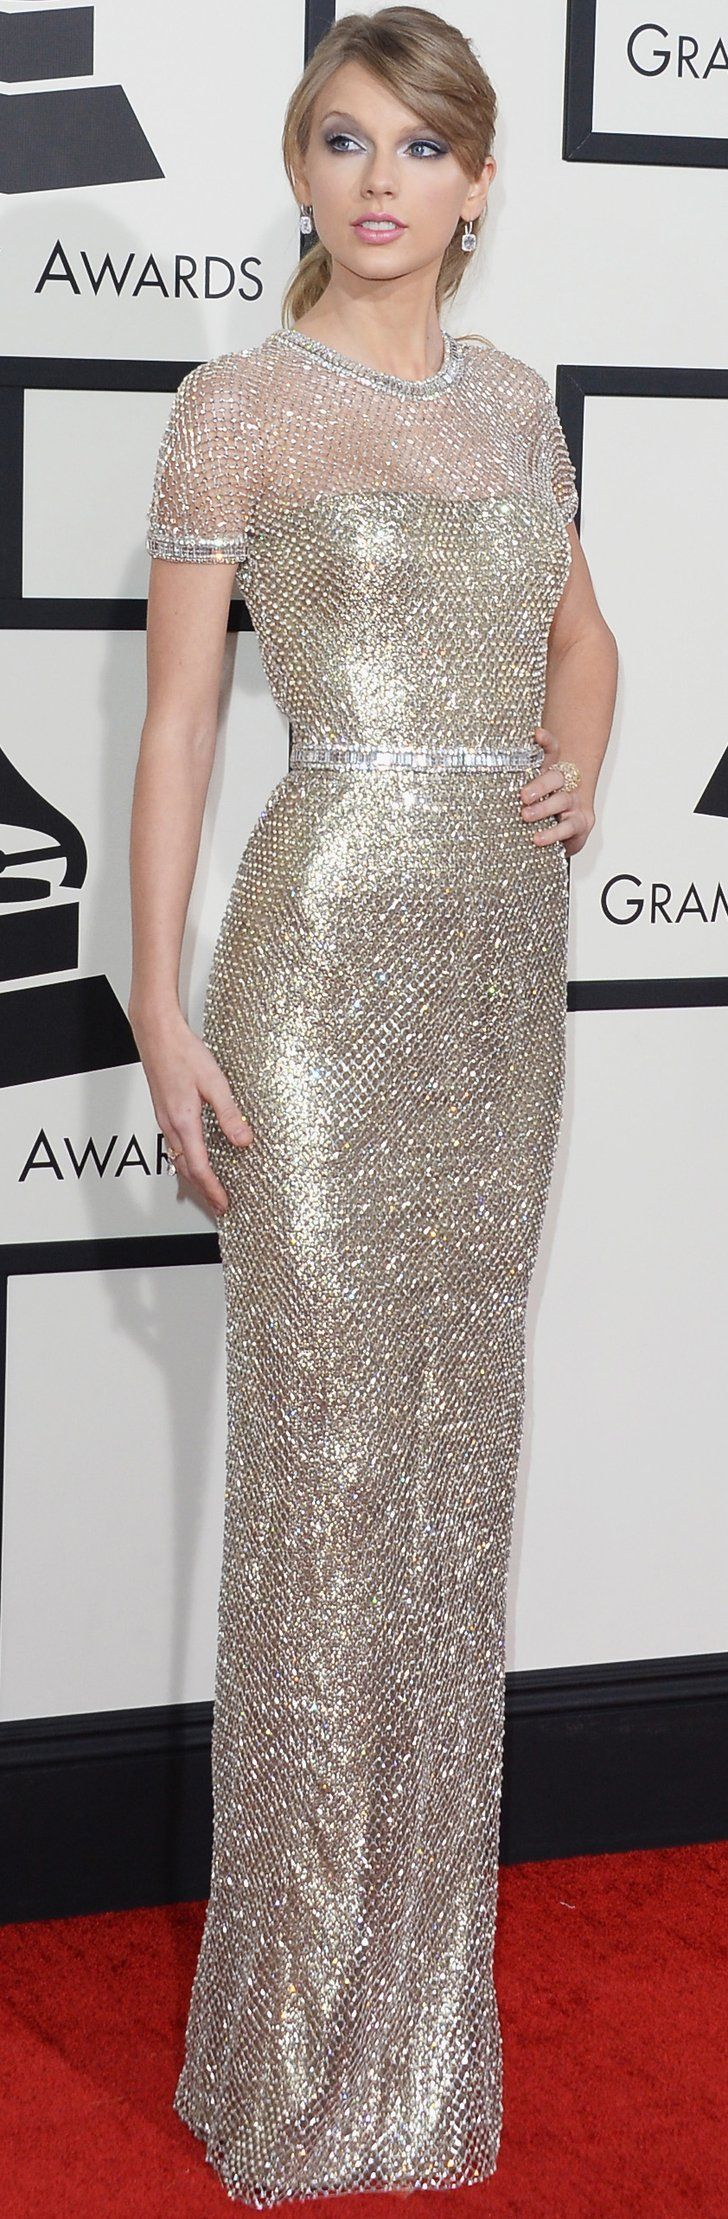 Was Taylor Swift in Fighting Form at the Grammys?